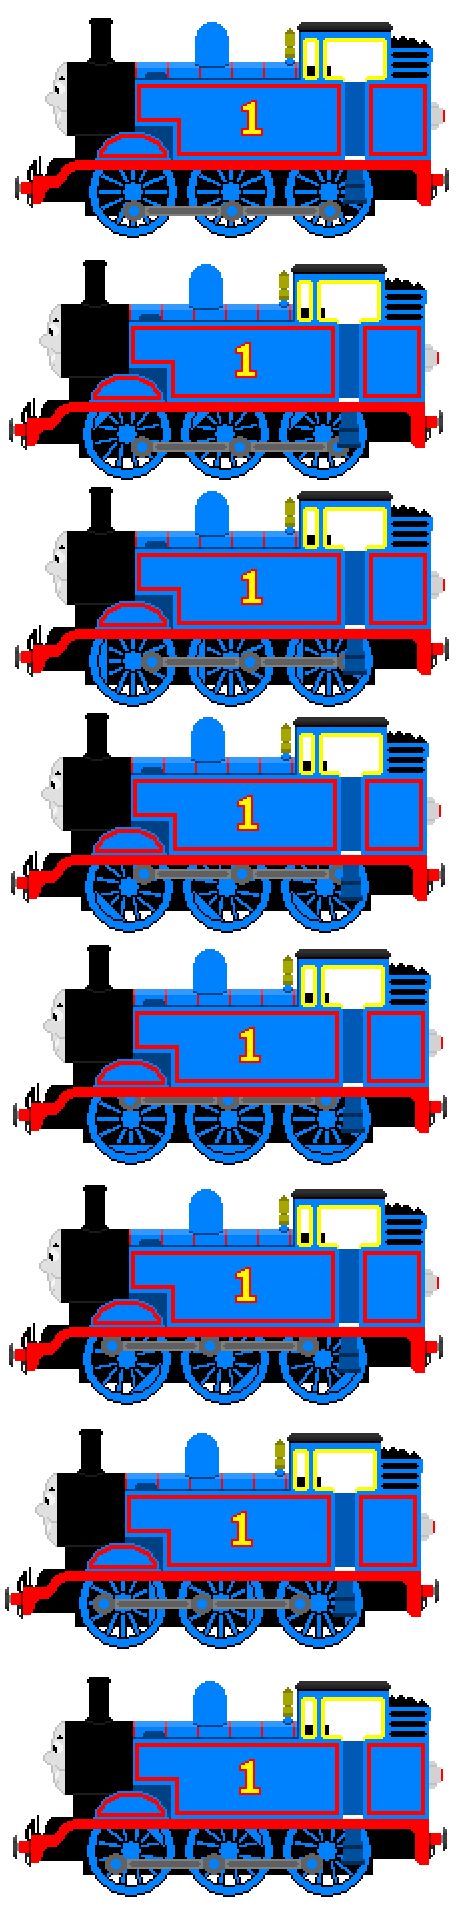 Car clipart sprite sheet clip art royalty free stock Thomas the Tank Engine (Full Sprite Sheet) by JamesFan1991 on ... clip art royalty free stock